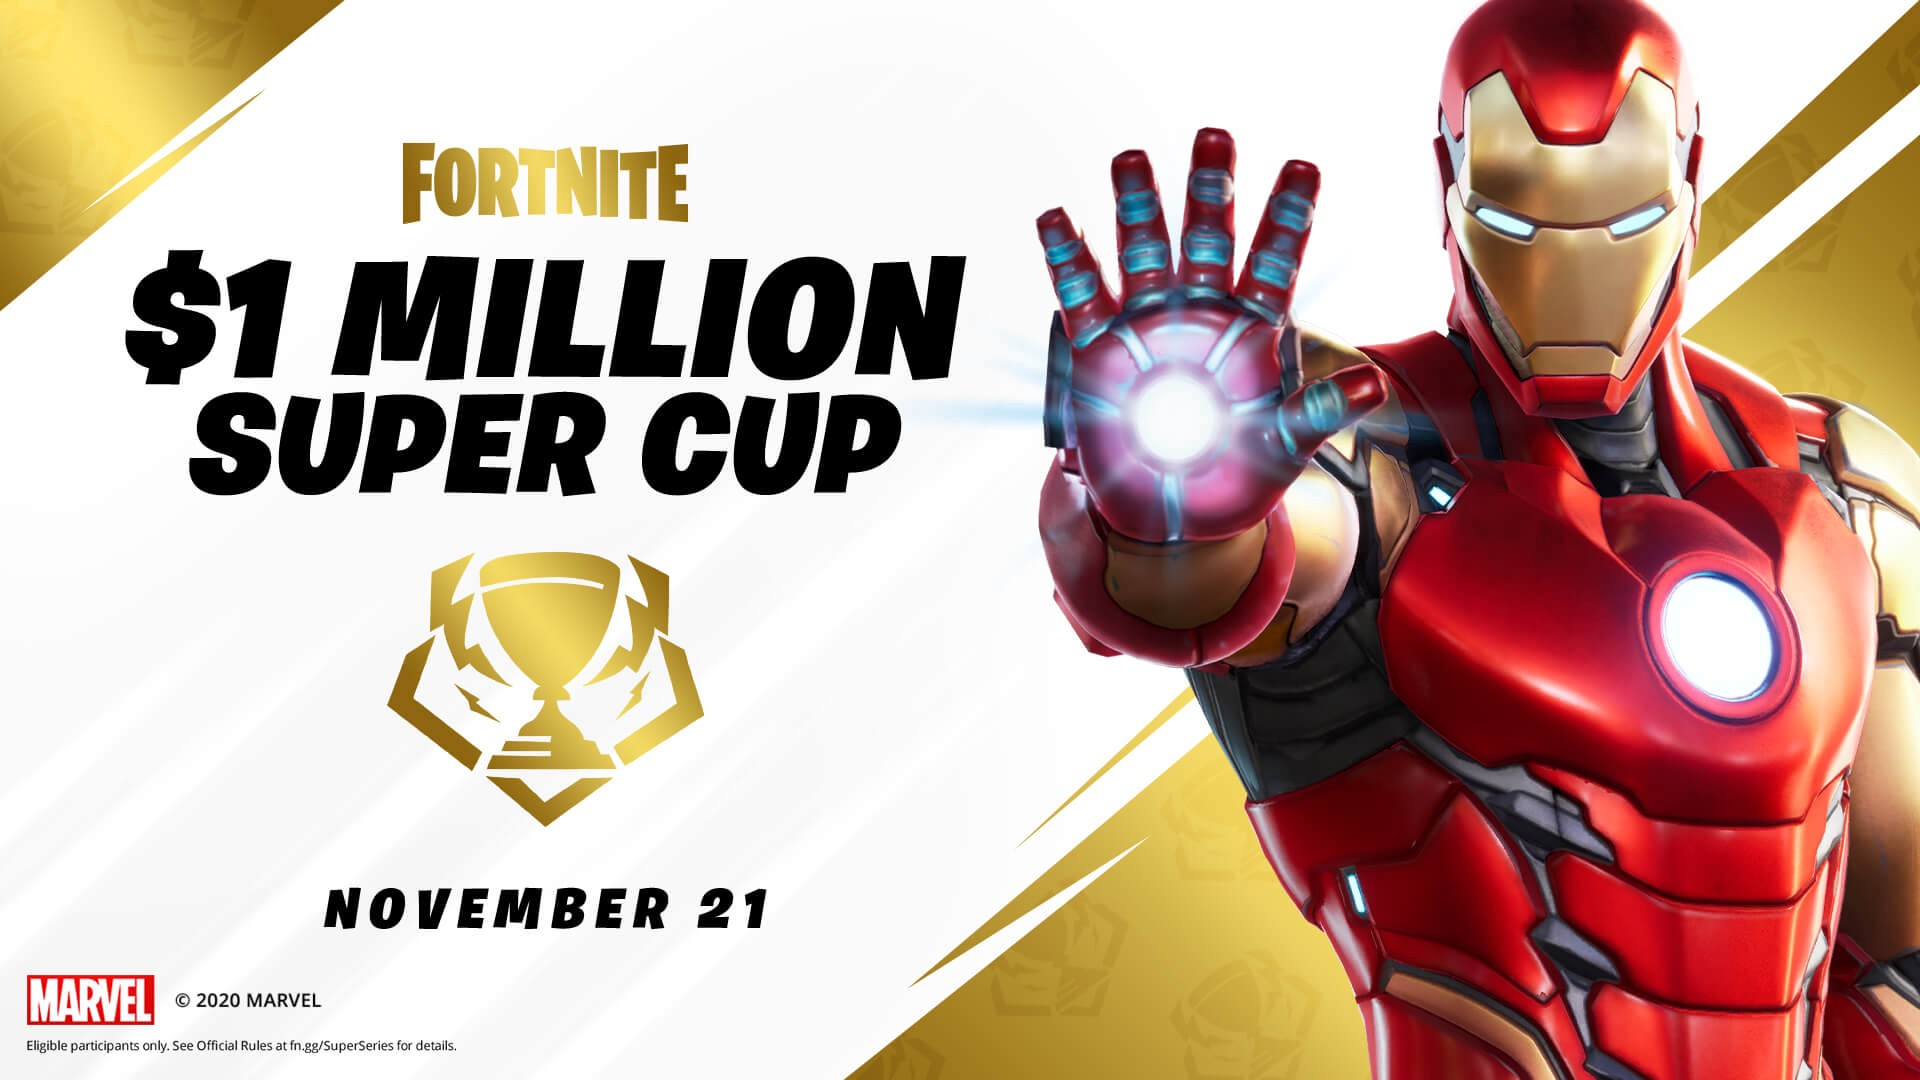 Fortnite Super Cup starts soon.